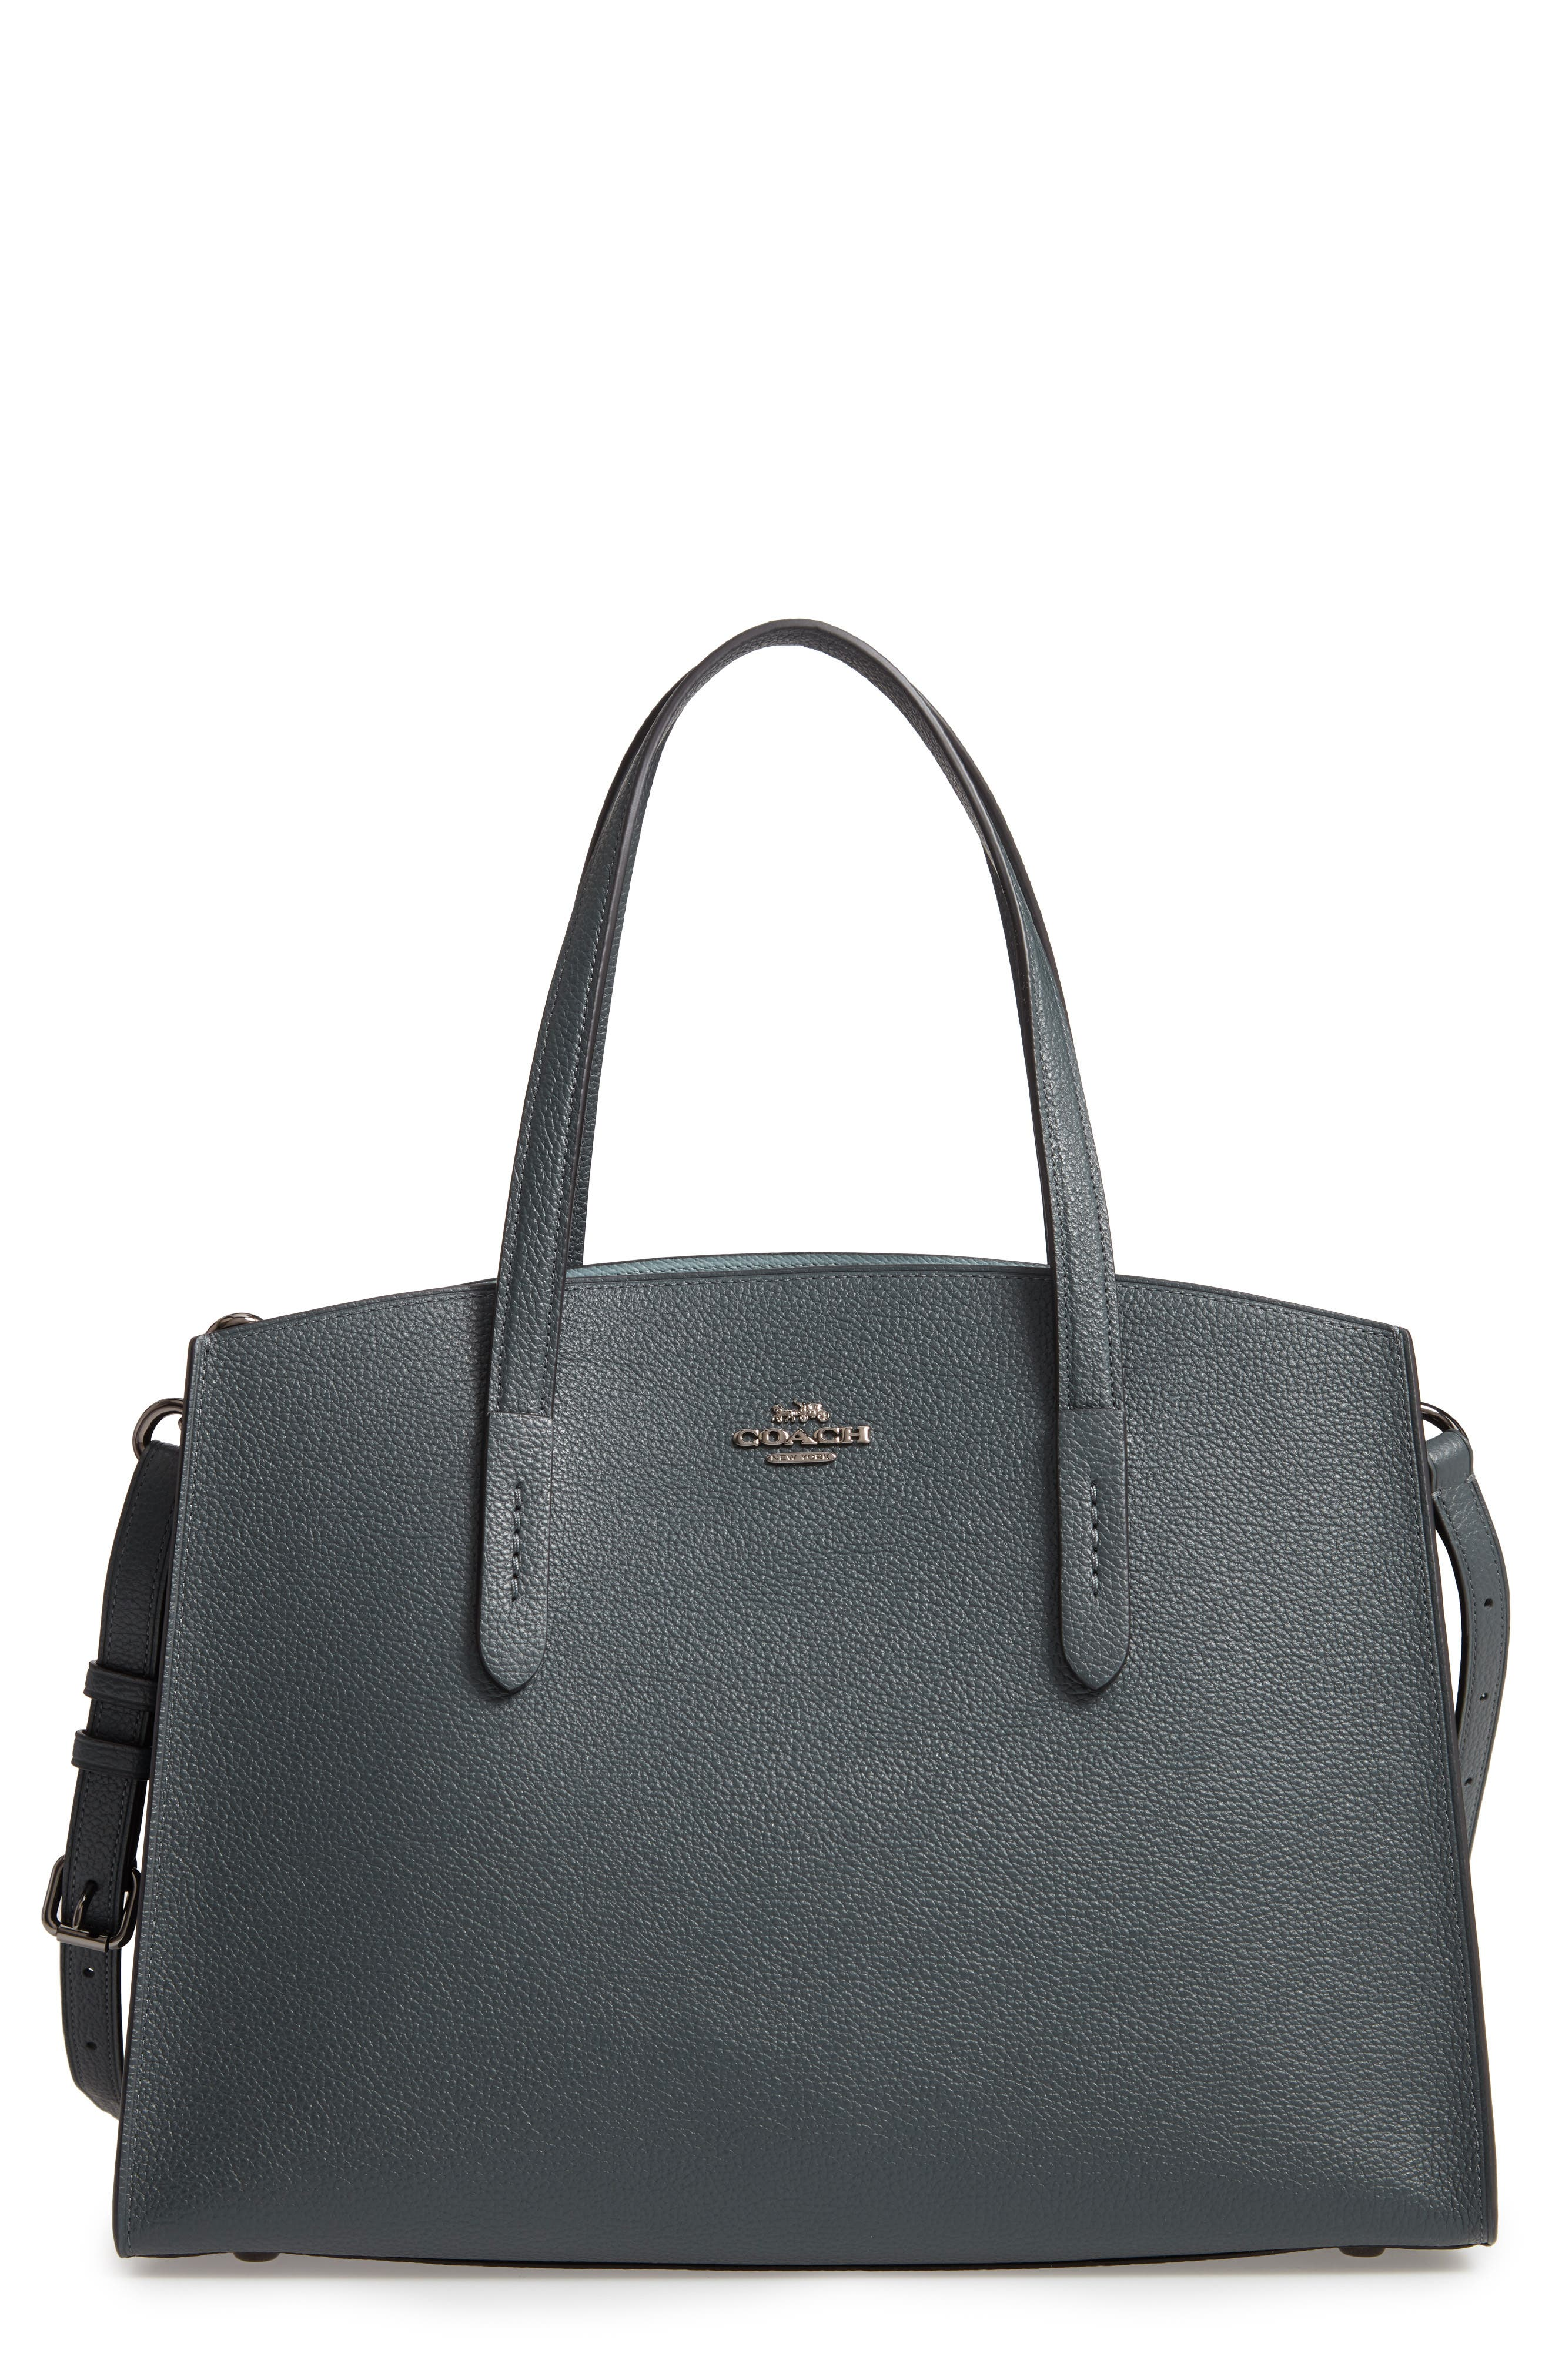 Charlie Leather Tote,                             Main thumbnail 1, color,                             CYPRESS